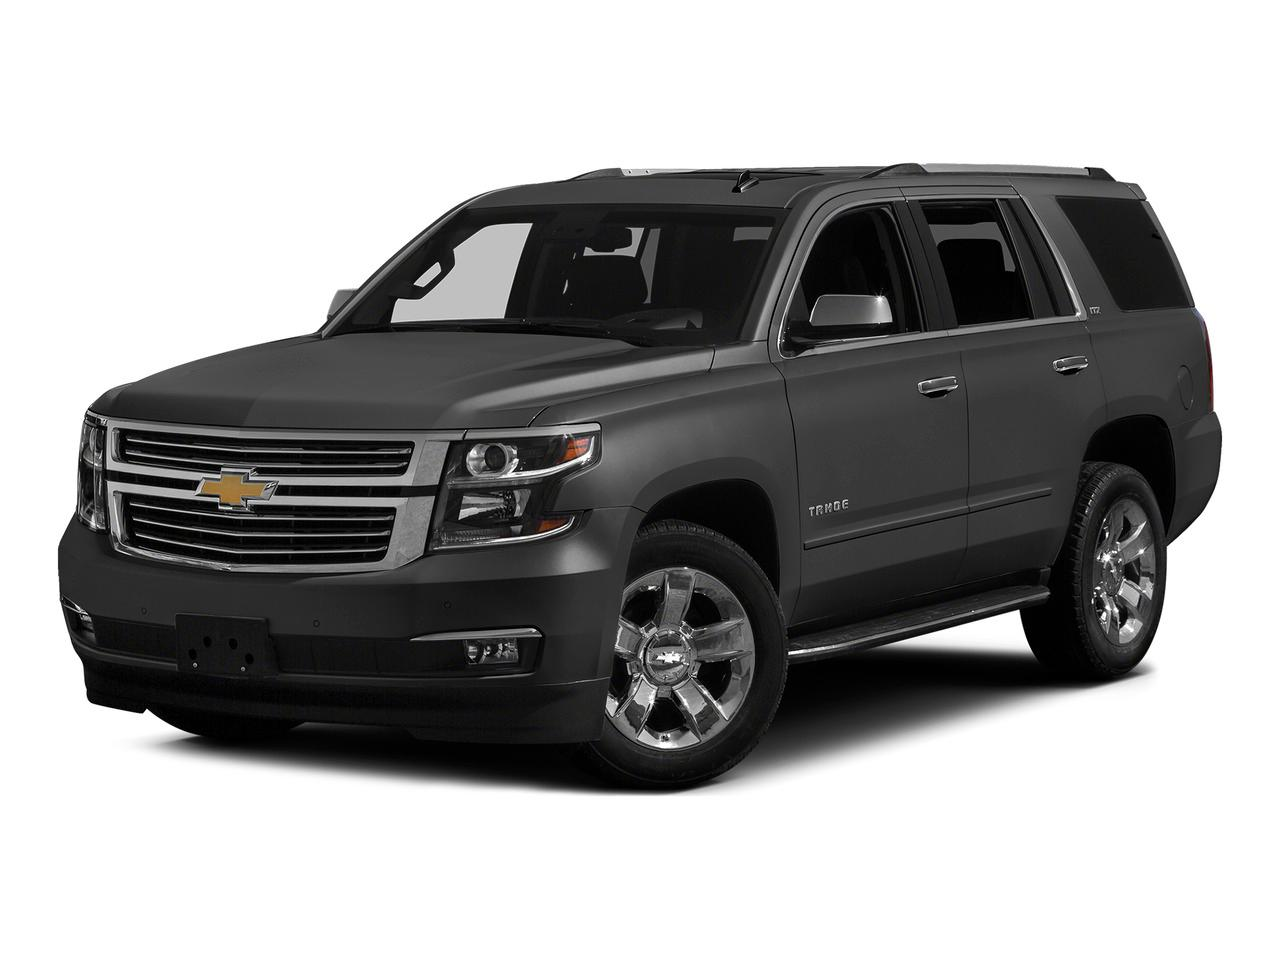 2015 Chevrolet Tahoe Vehicle Photo in Midland, TX 79703